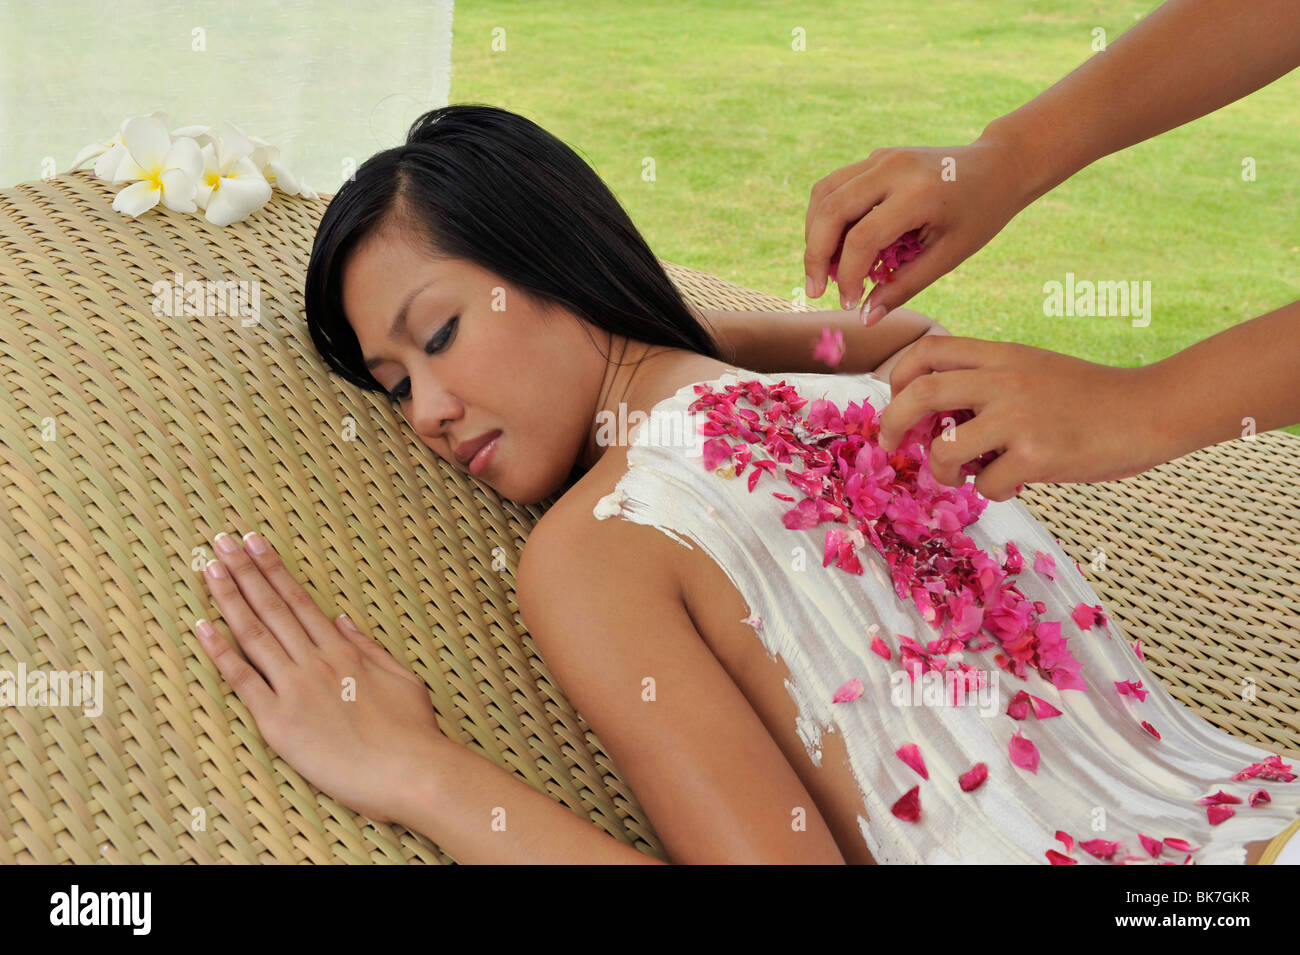 Kaolin clay mask with rose petals - Stock Image